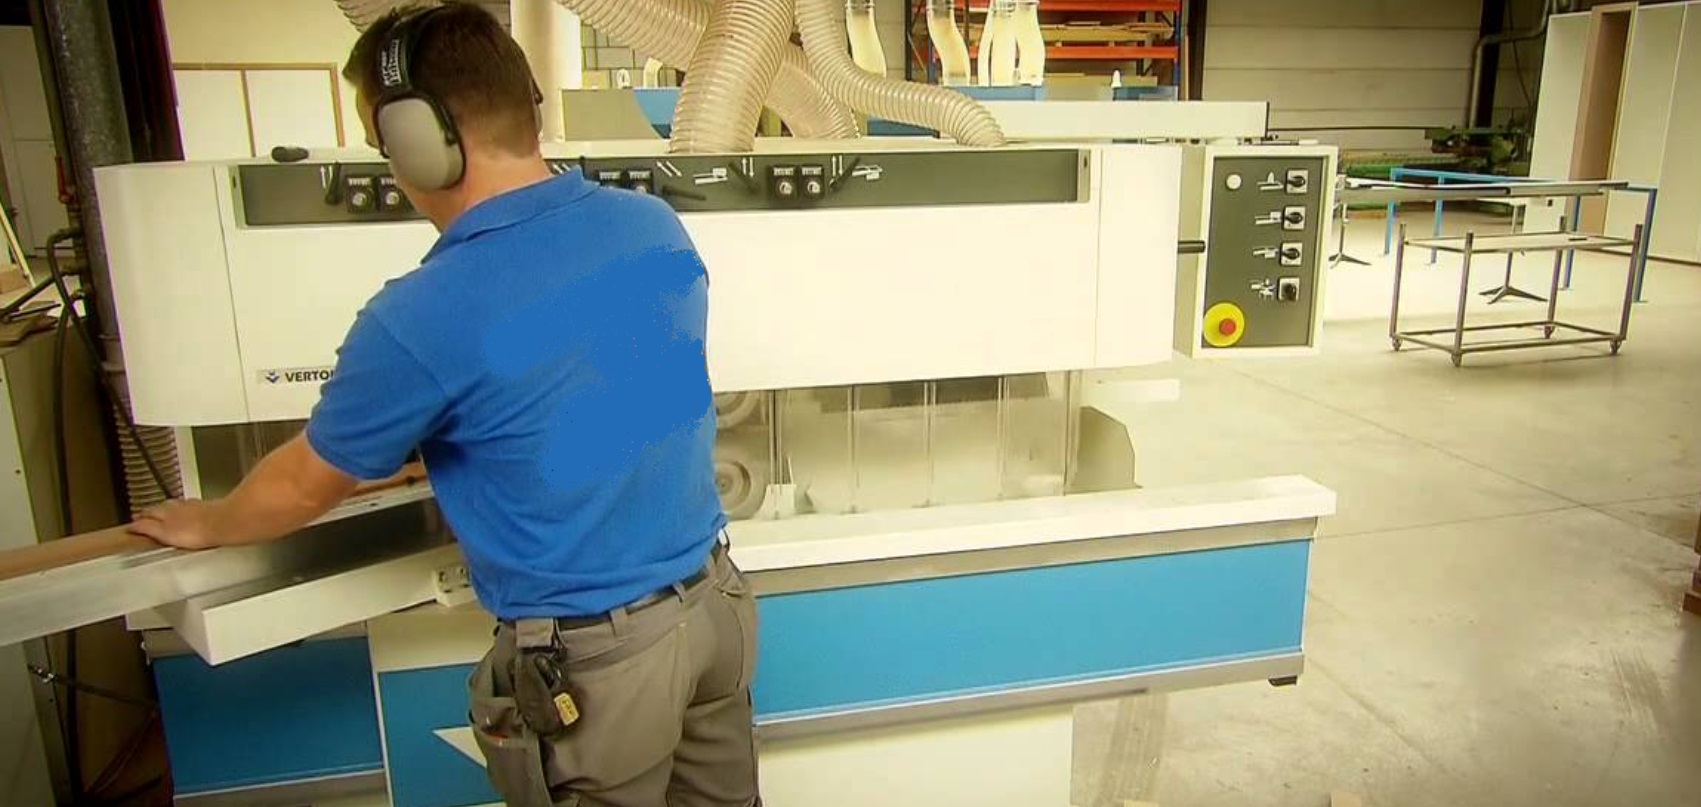 Managed, Cabinet Joinery Business For Sale in Queensland, Australia